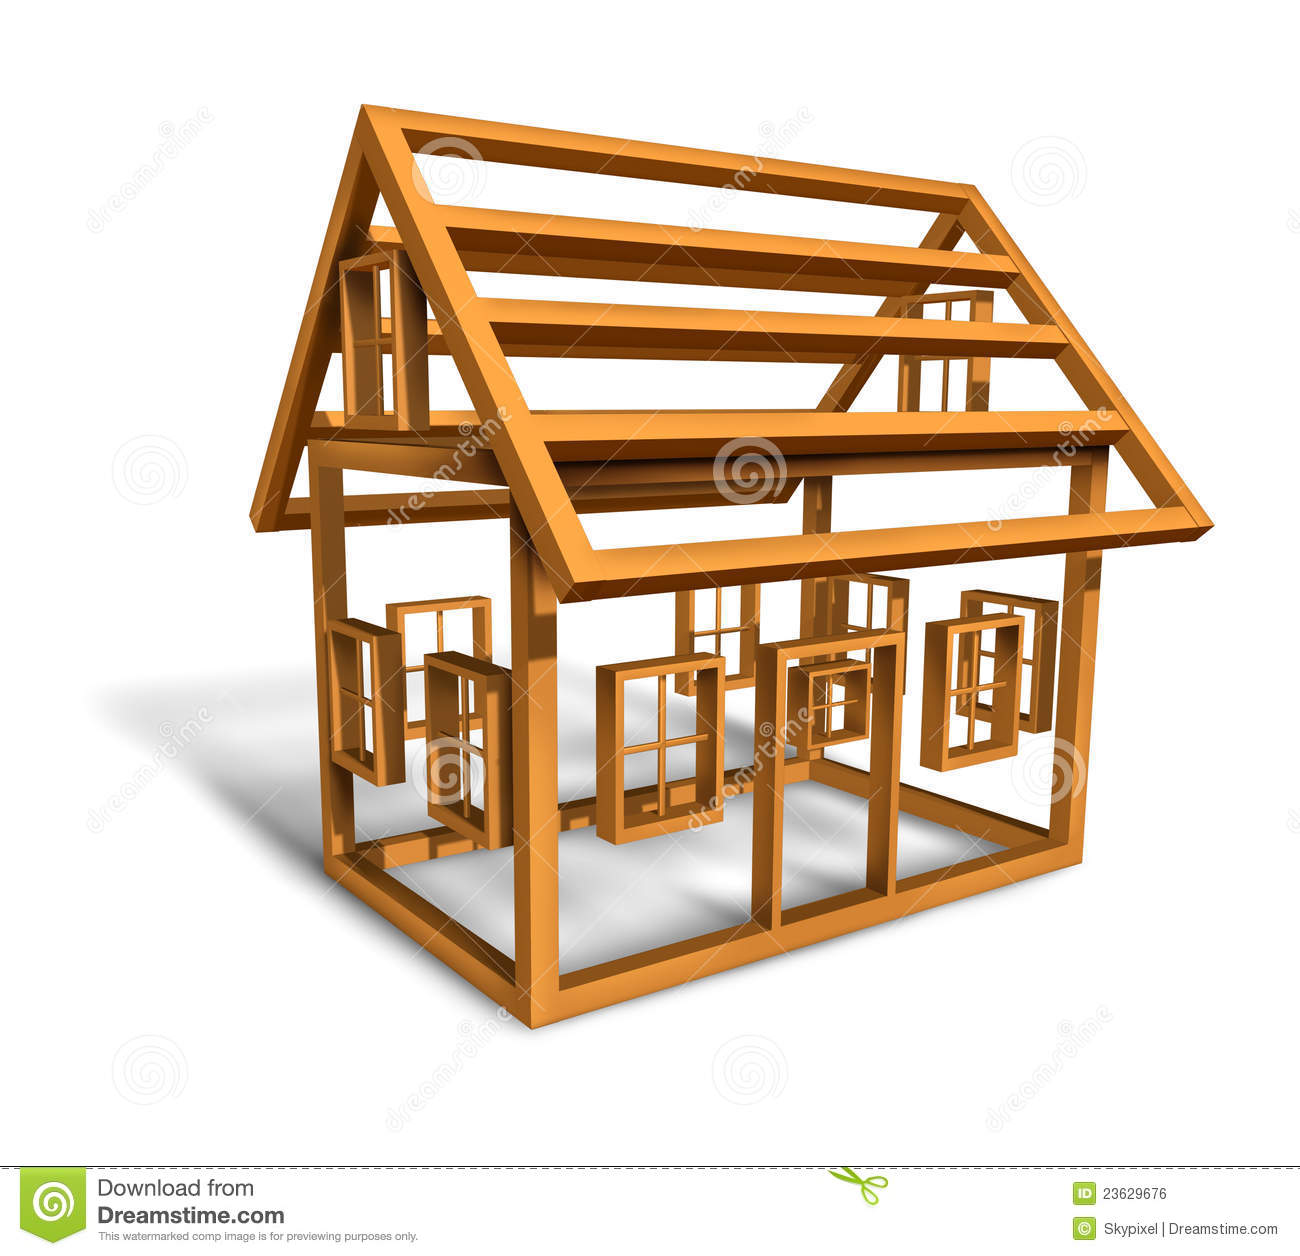 Home Construction With The Wood Frame Structure Of A House Being Built